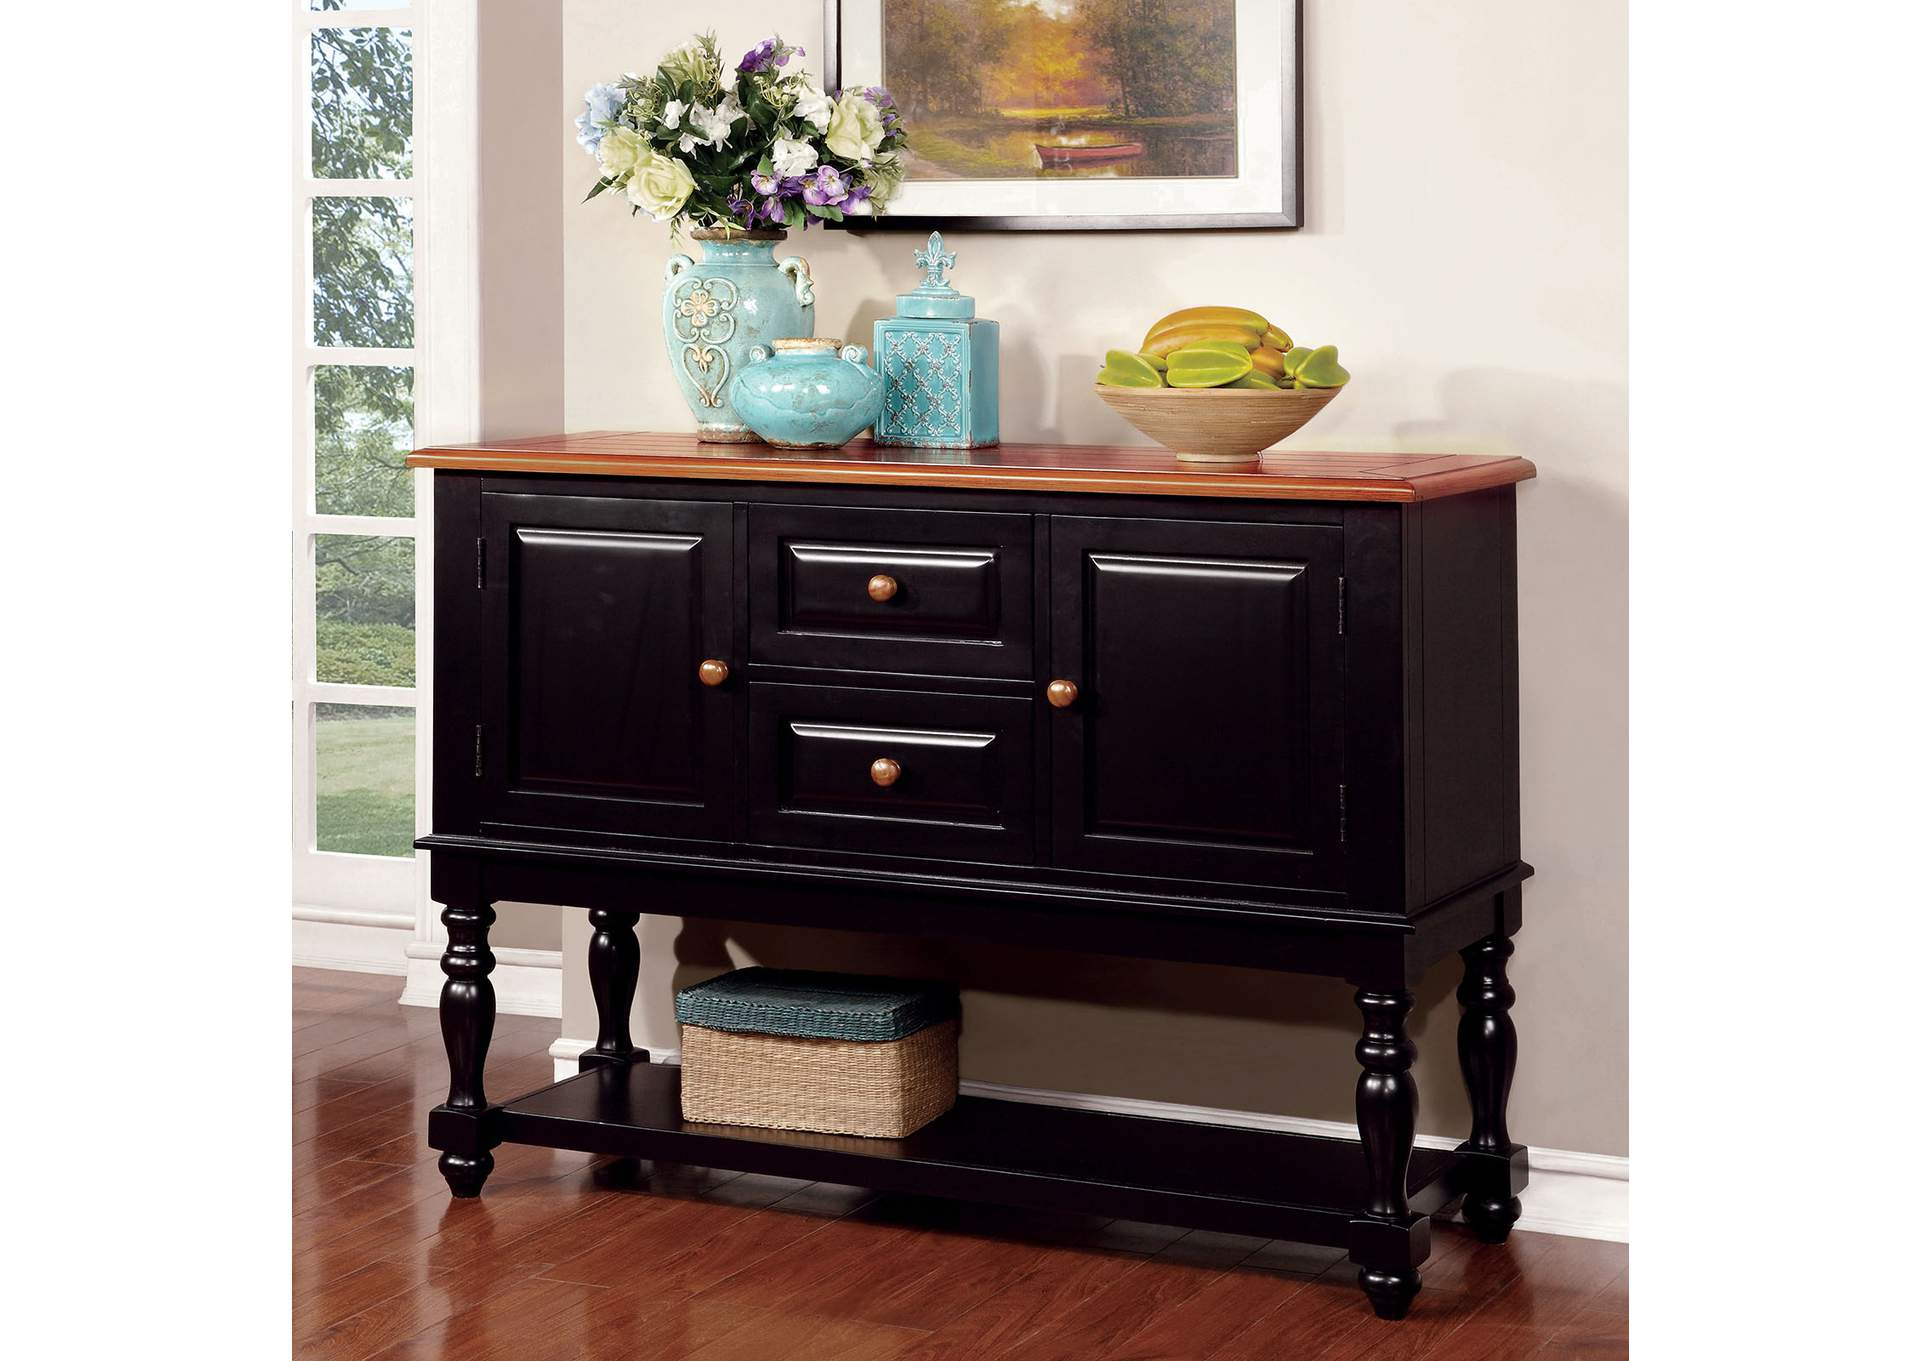 Mayville Black/Antique Oak Server w/Storage,Furniture of America